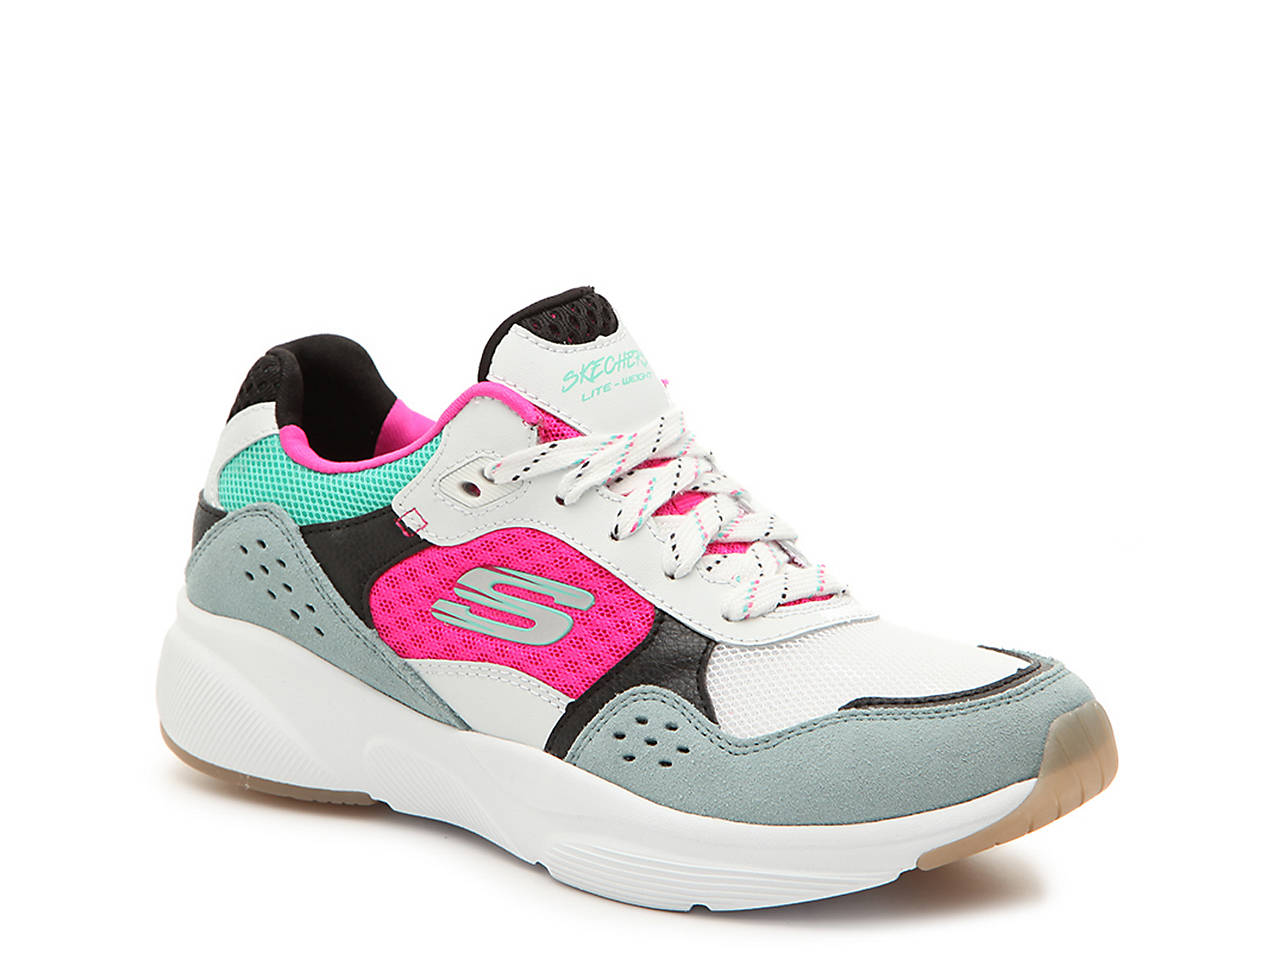 4dff7eb3f258 Skechers Meridian Charted Sneaker - Women s Women s Shoes